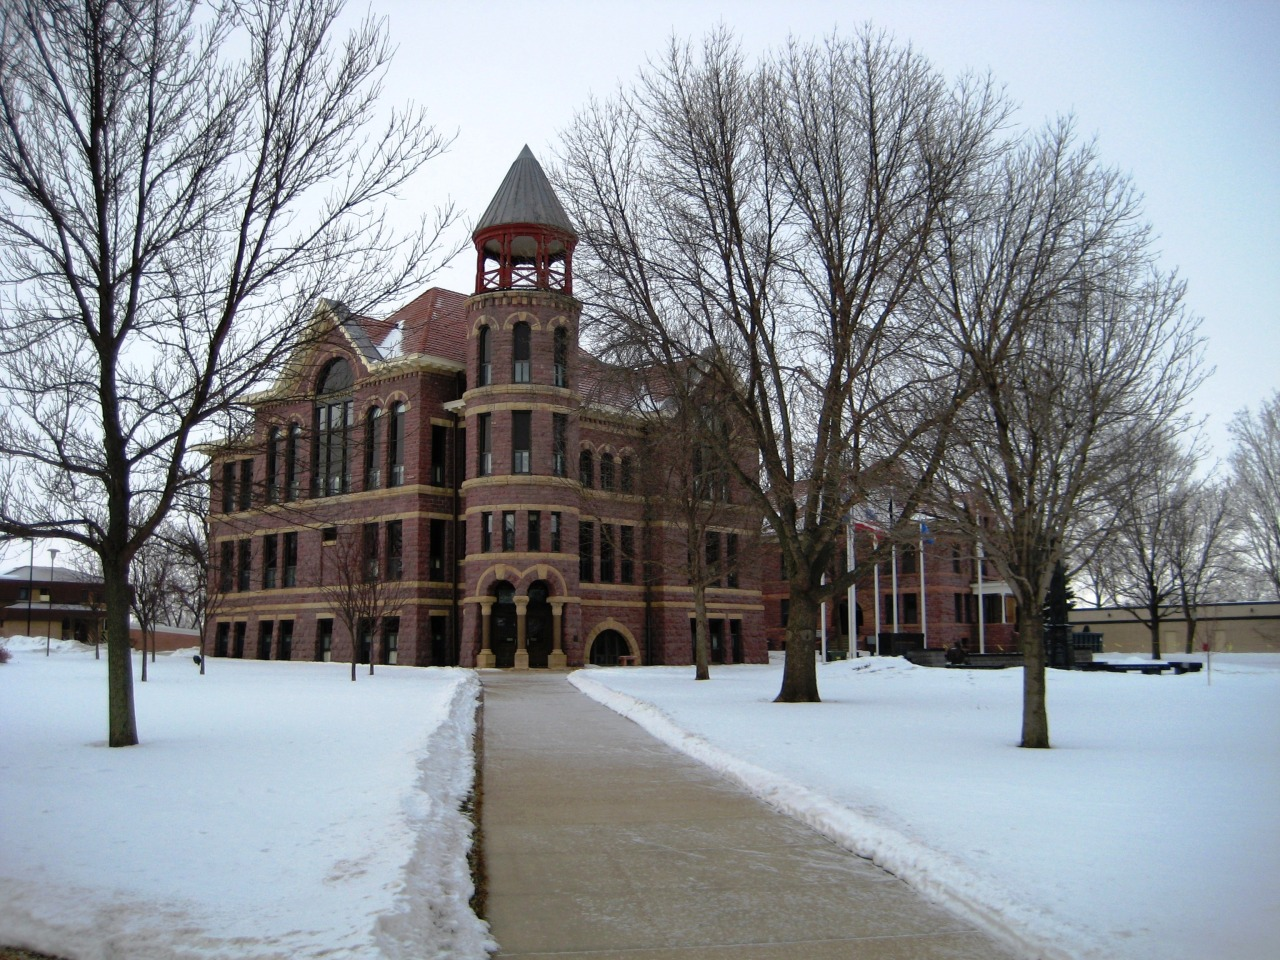 Pipestone County Courthouse - Pipestone, MN